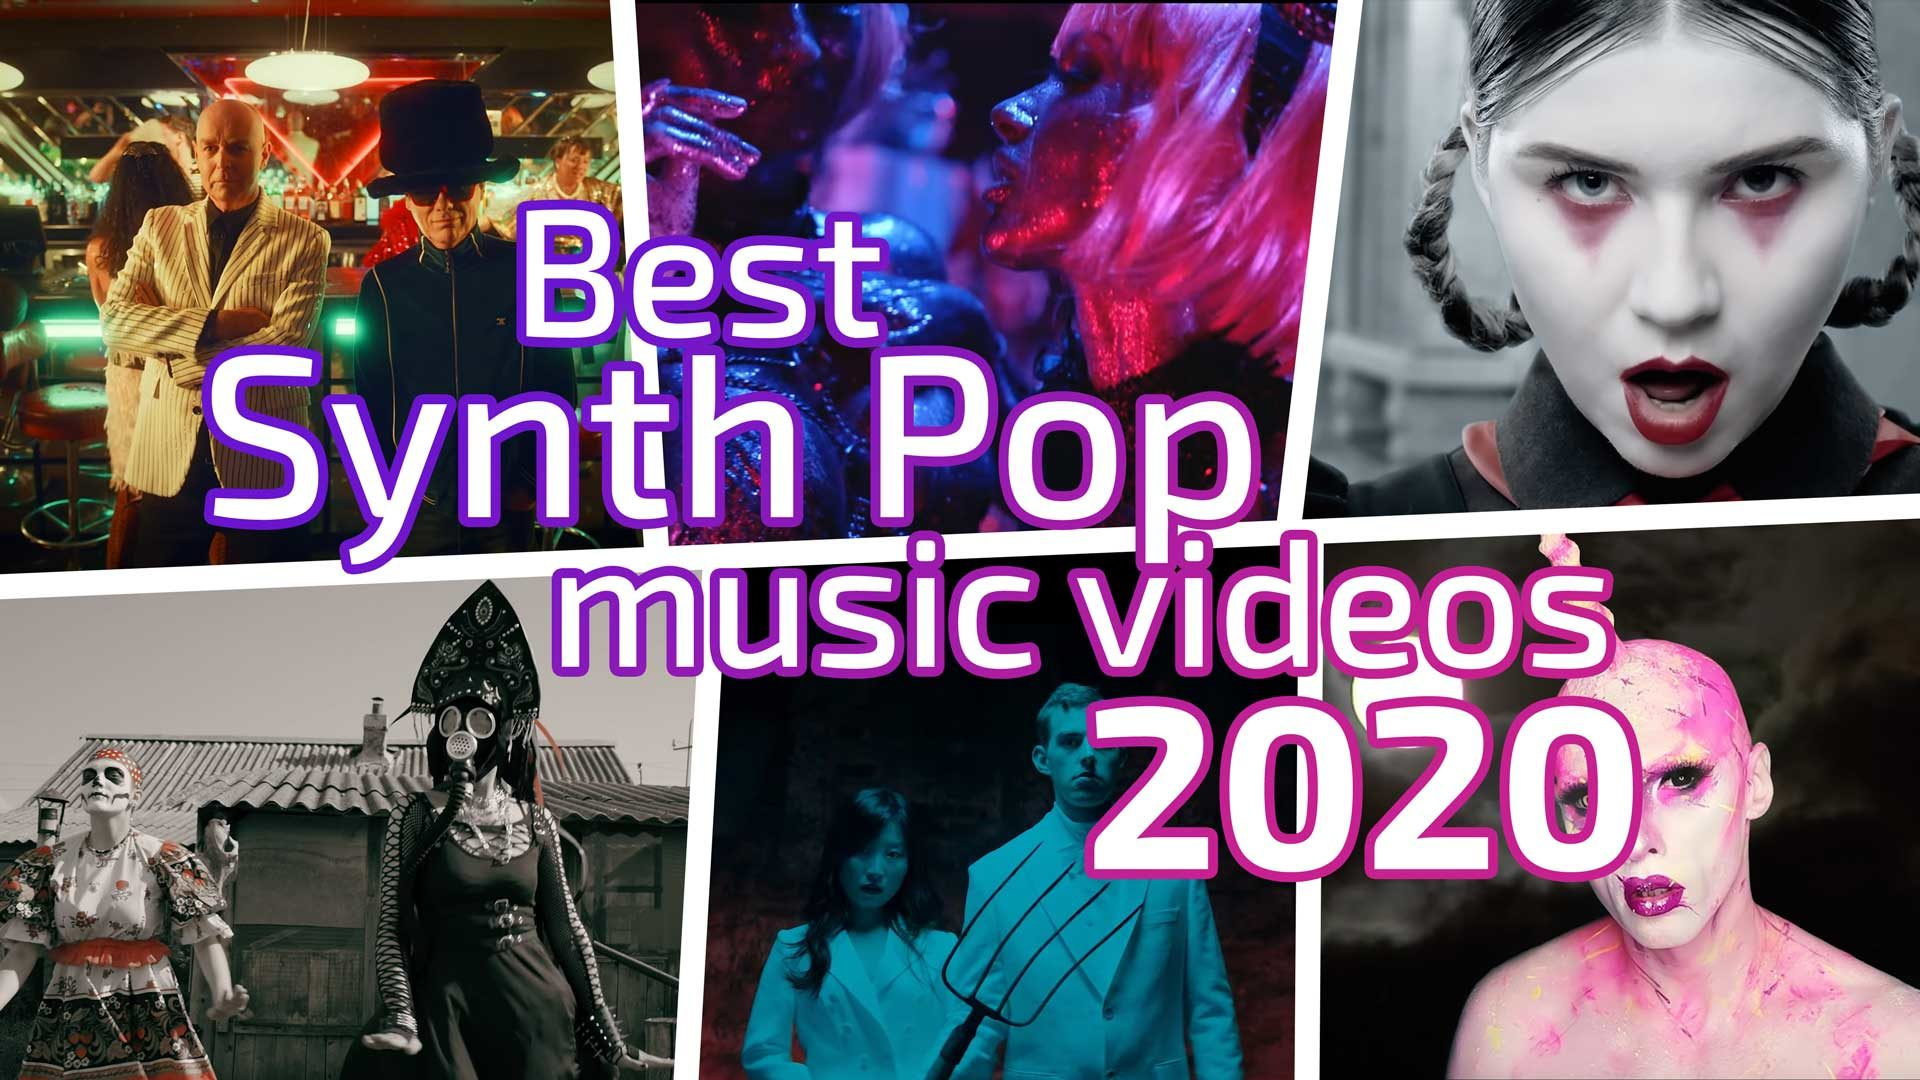 Best Synth Pop music videos 2020